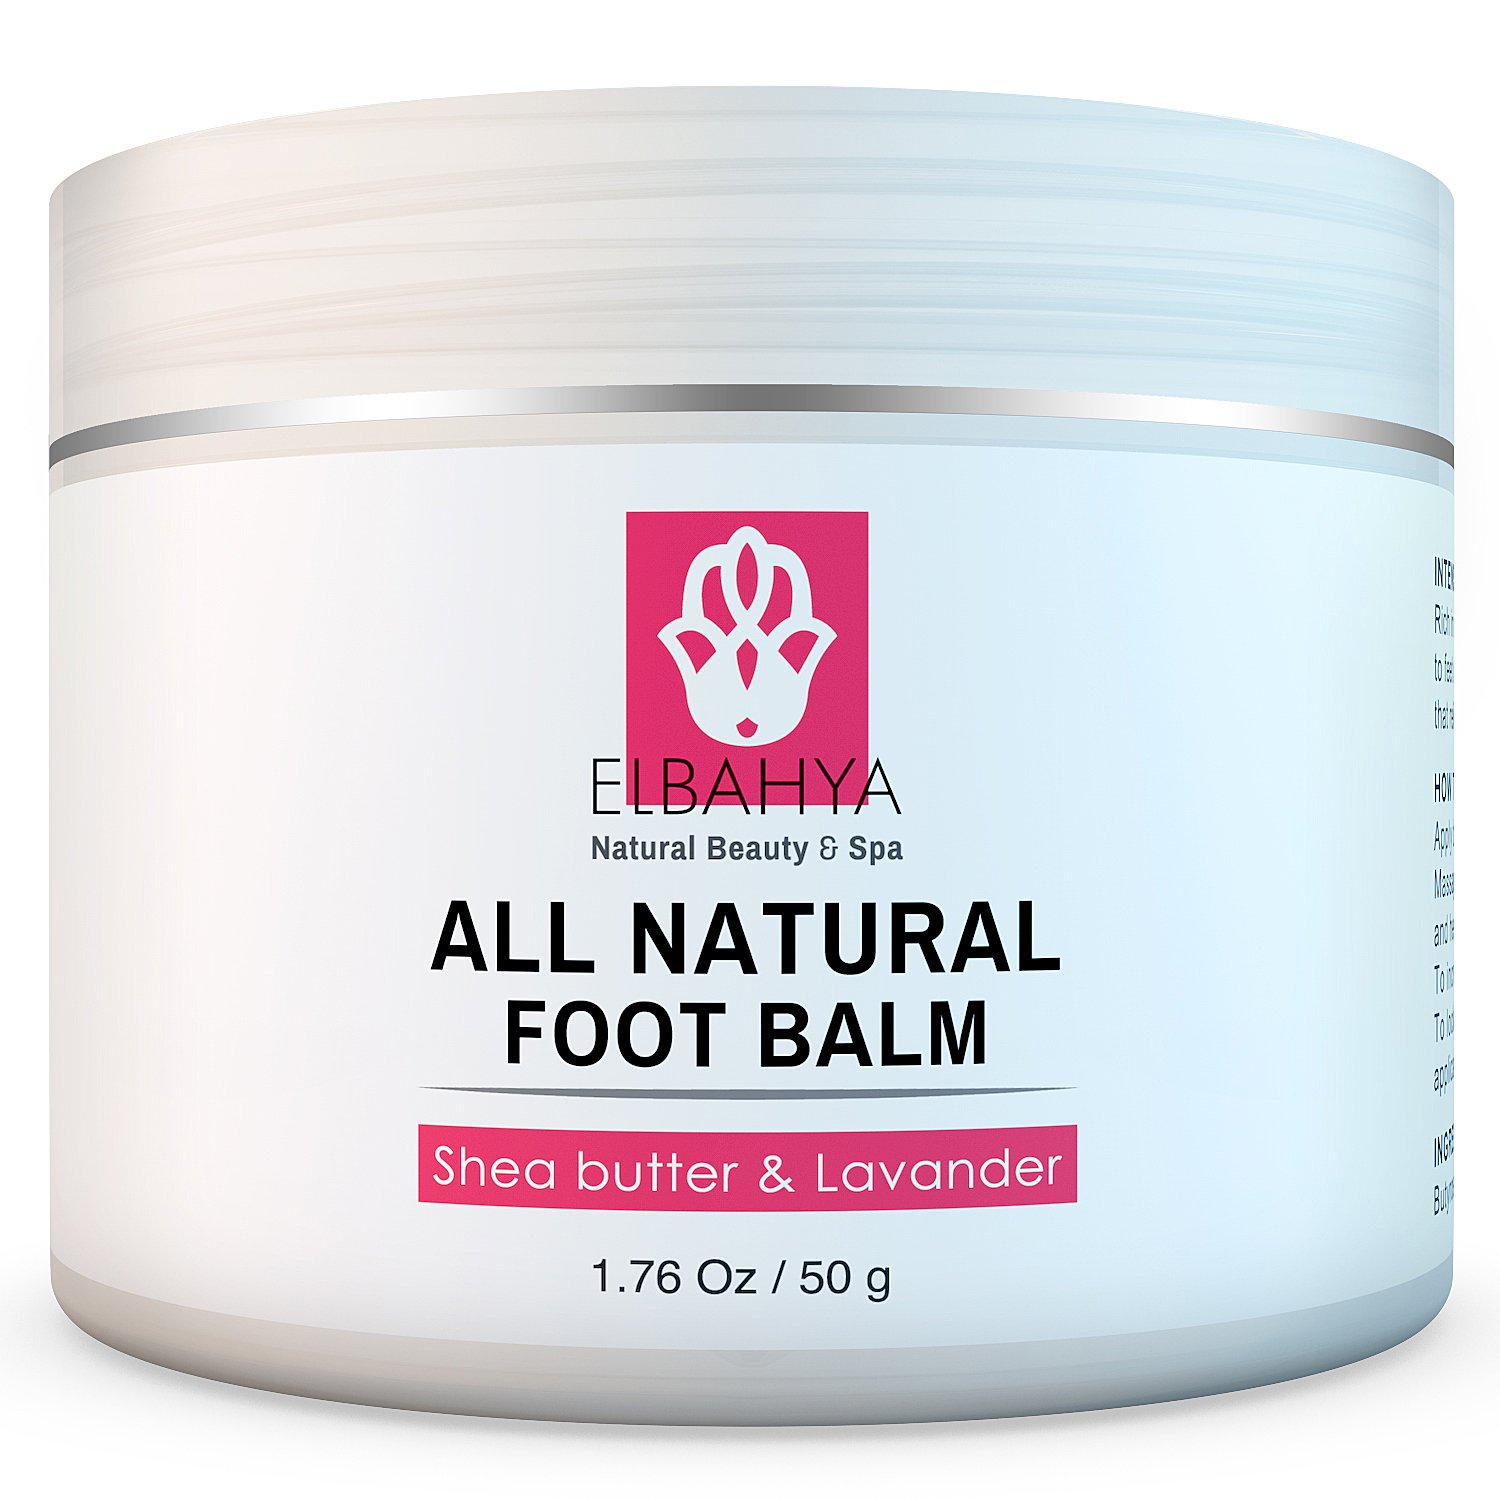 Elbahya Organic Foot Balm with Shea Butter and Lavender Effective Natural Moisturizer for Dry Cracked Feet and Heels. 50g